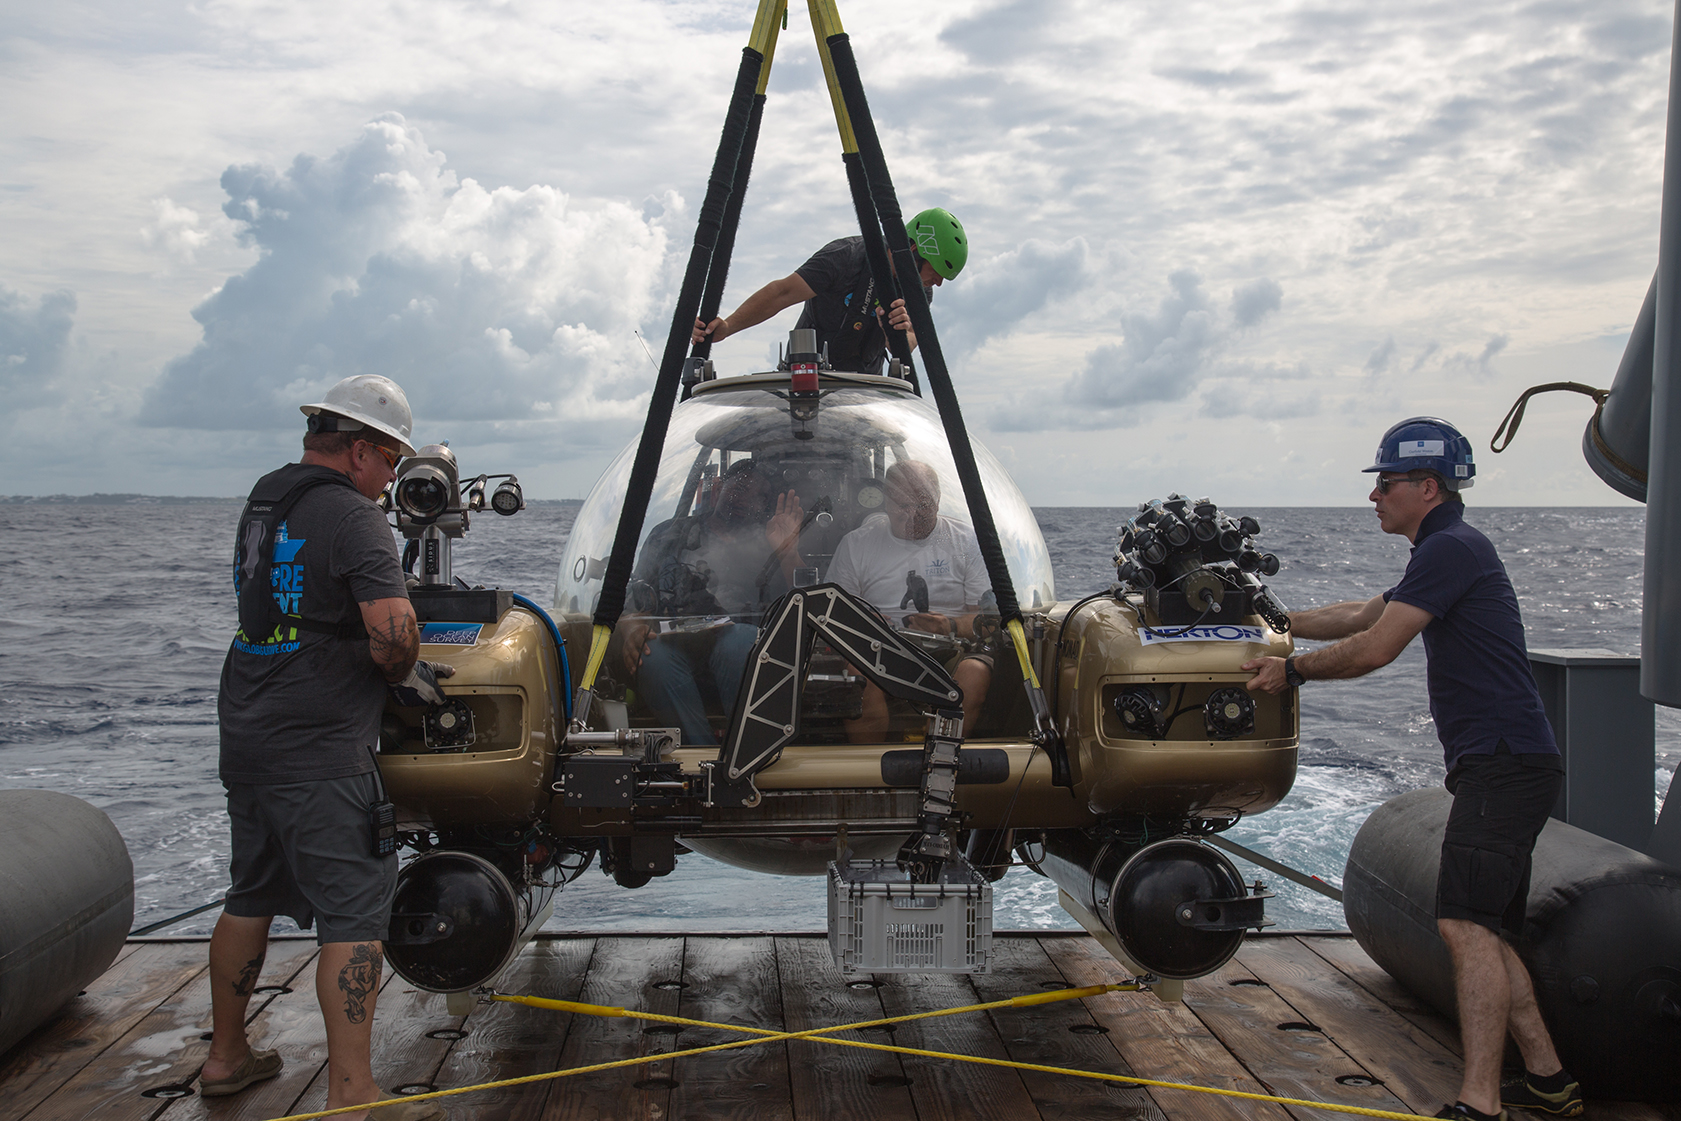 Nekton Mission crew launches the Nomad submersible with pilot Kelvin Magee and NewsHour science producer Nsikan Akpan